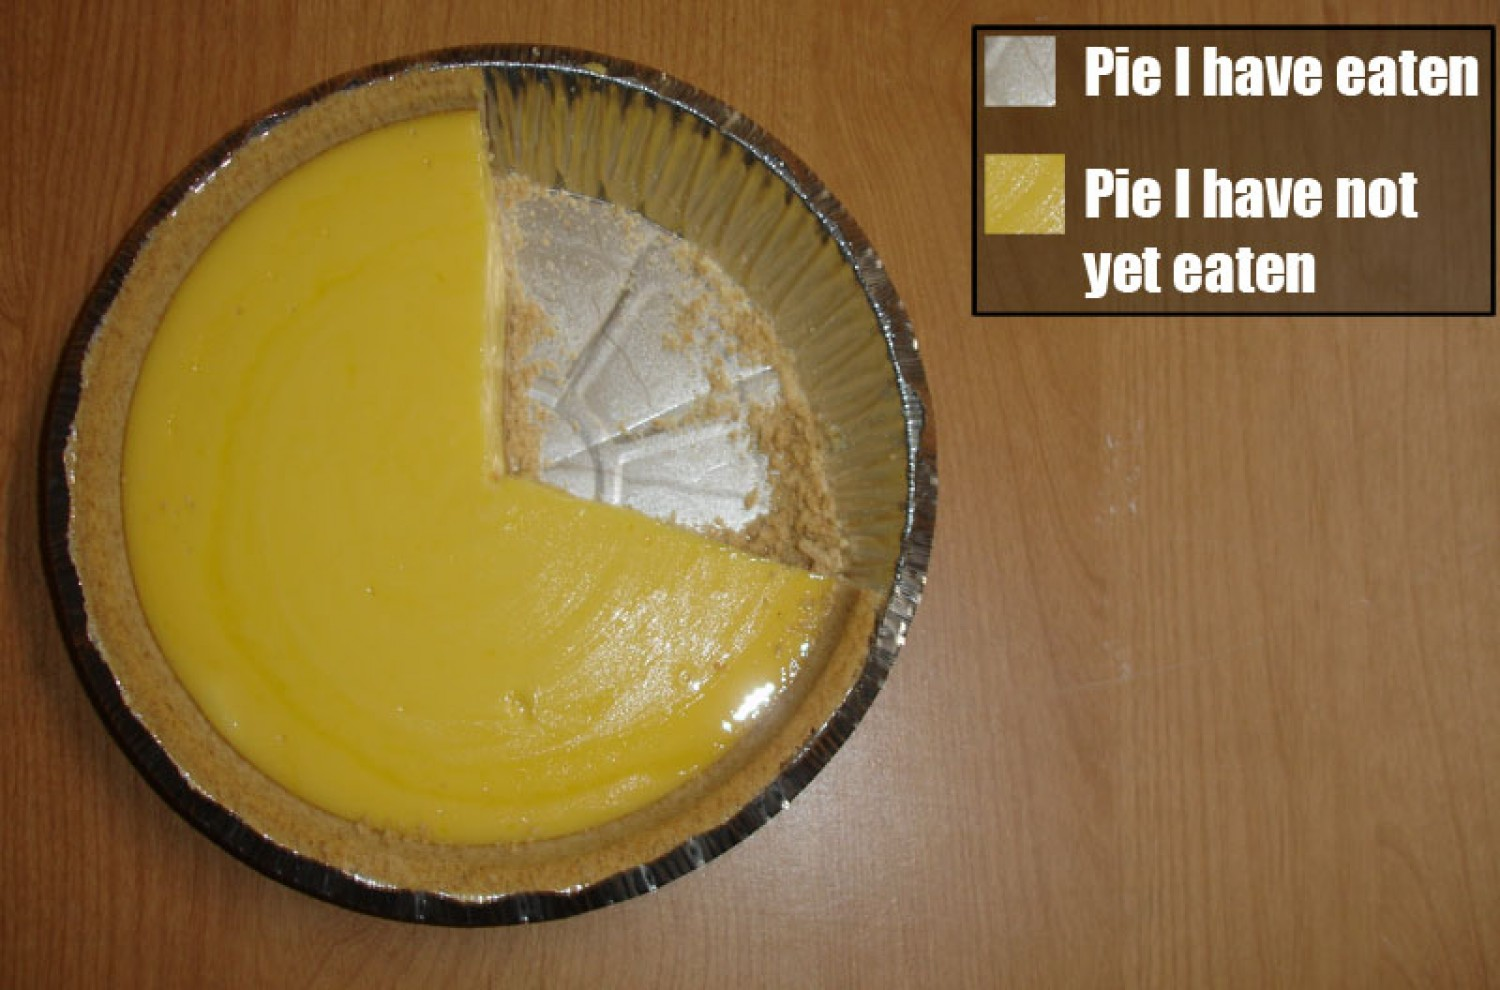 pie missing a section with legend that shows Pie I have eaten and Pie I have not yet eaten